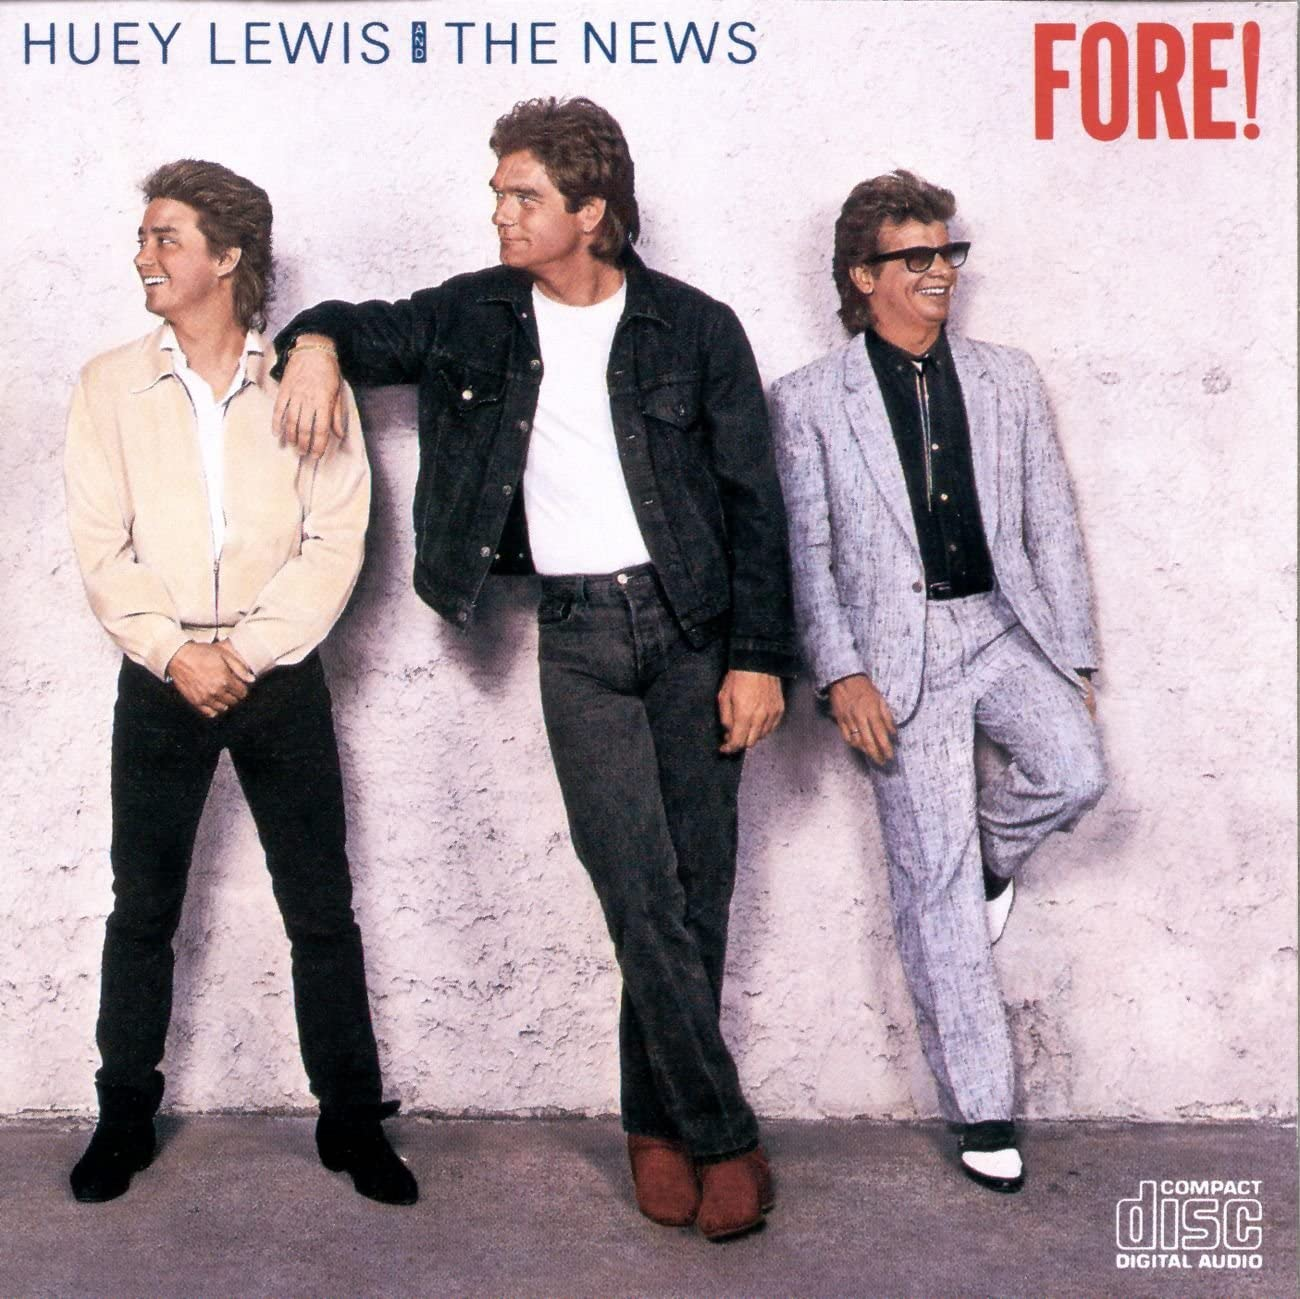 81SqqDjb KL. AC SL1300 20 Things You Might Not Have Known About Huey Lewis and the News